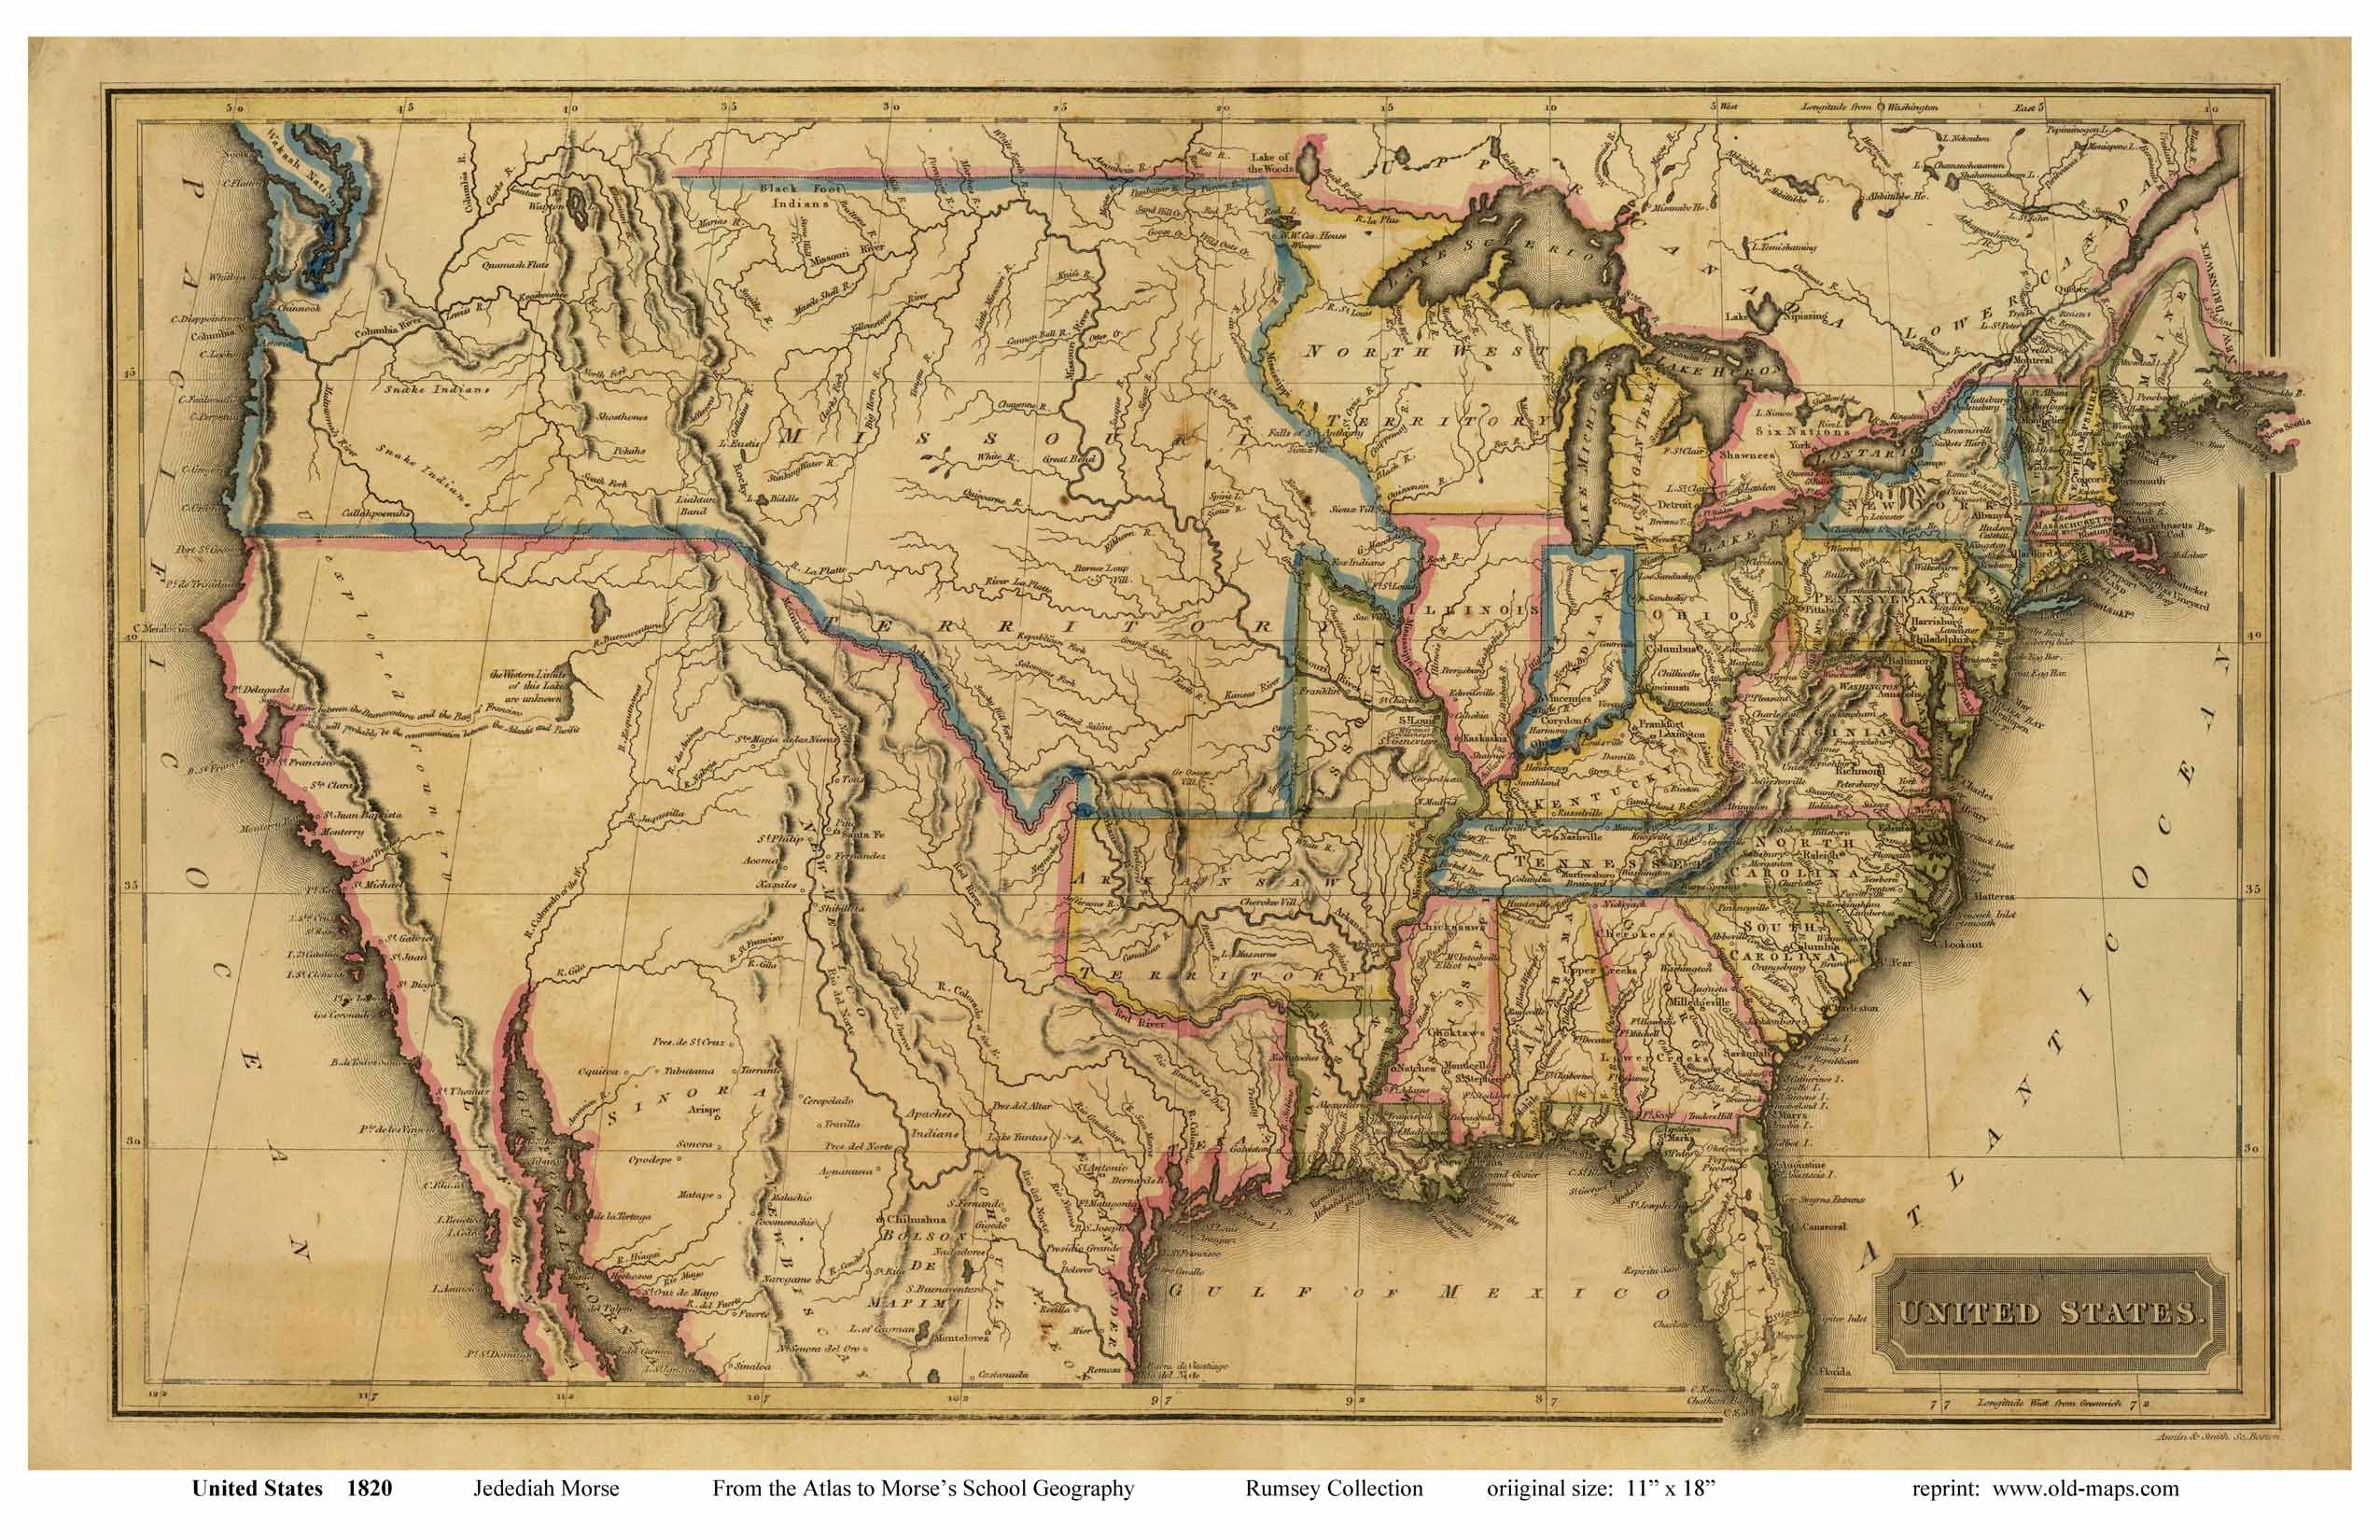 Res: 2550x1650, Old US map from early 1800's.